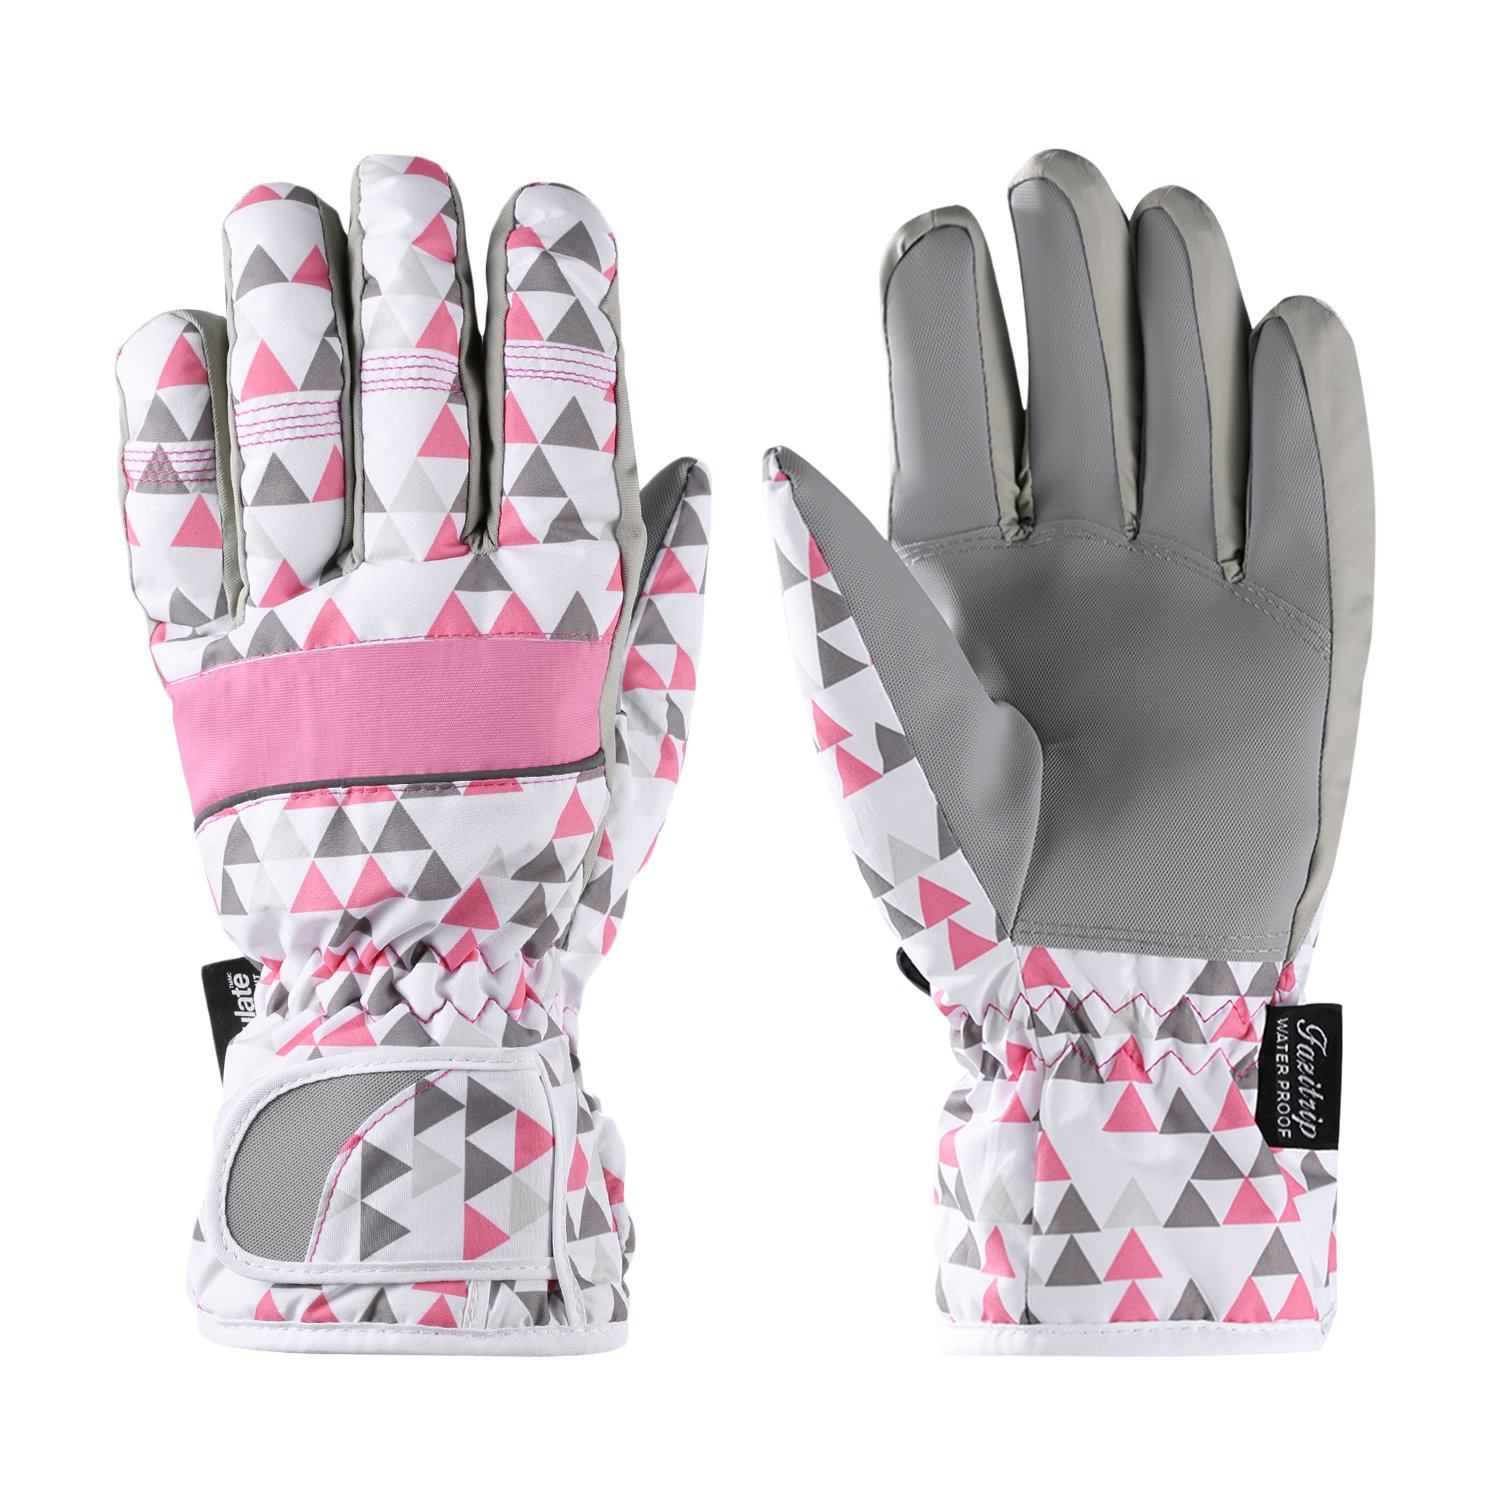 Buy Waterproof Thinsulate Winter Ski Gloves Now!